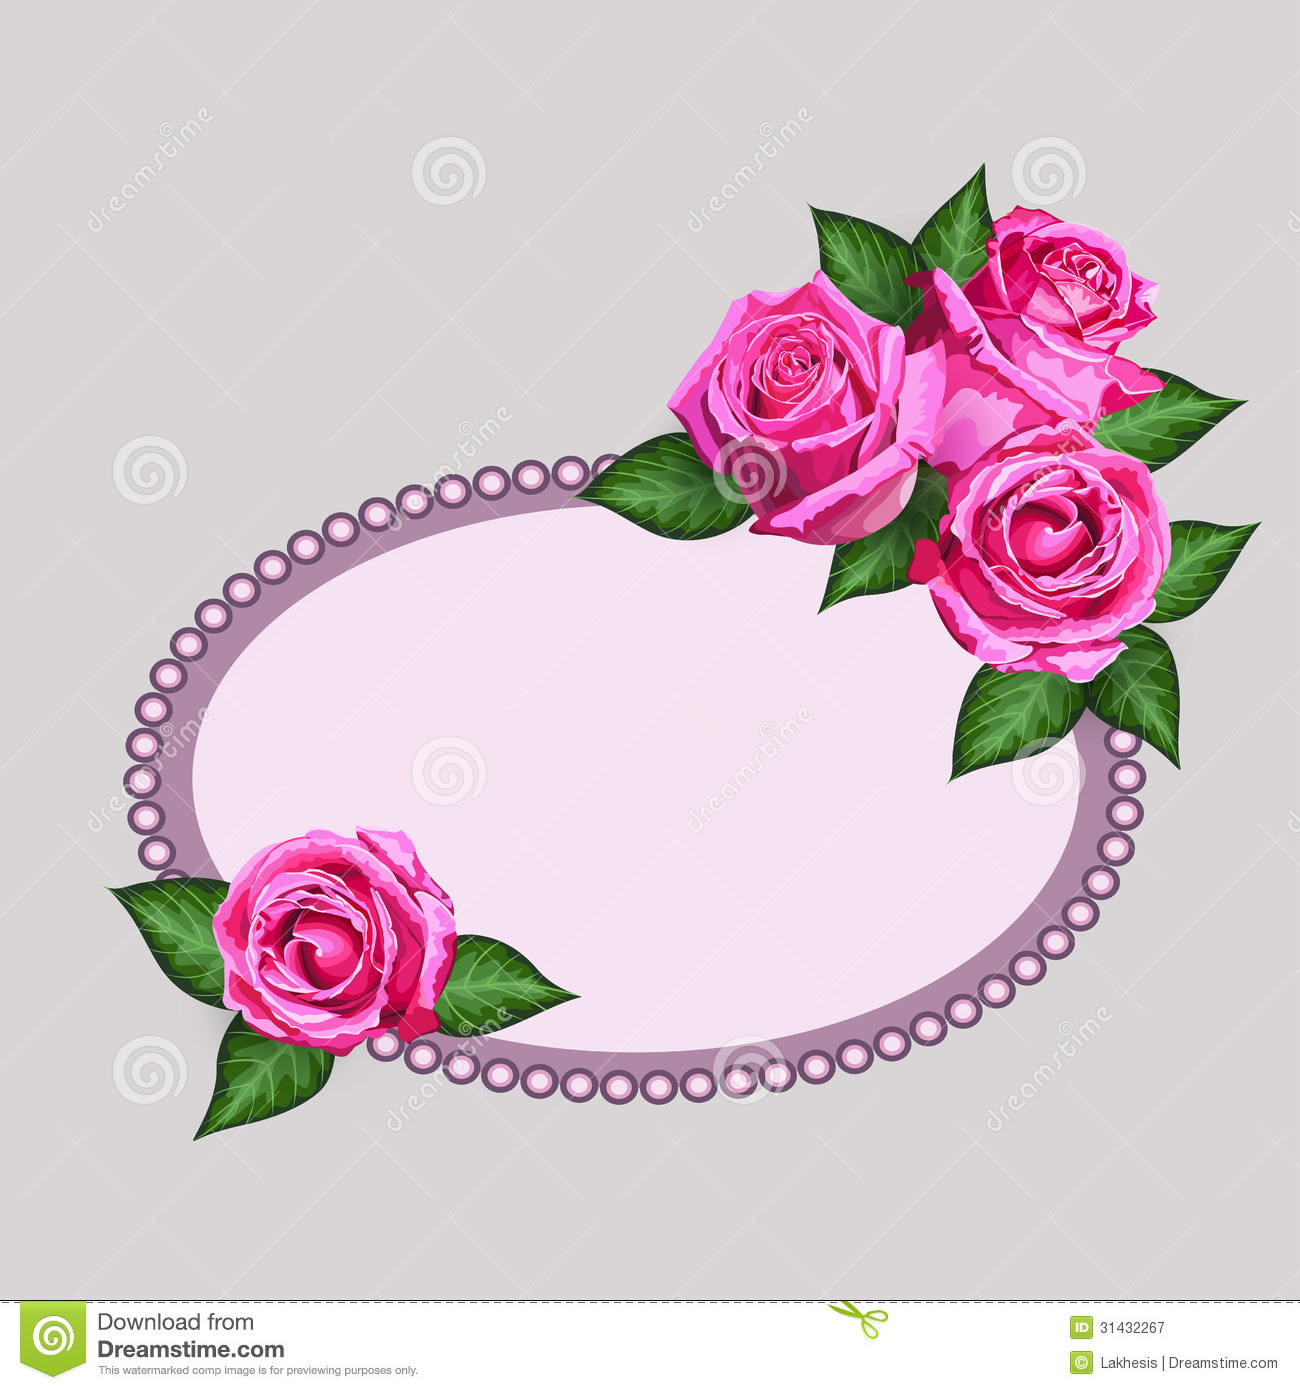 comment on this picture flower floral frame border stock vector